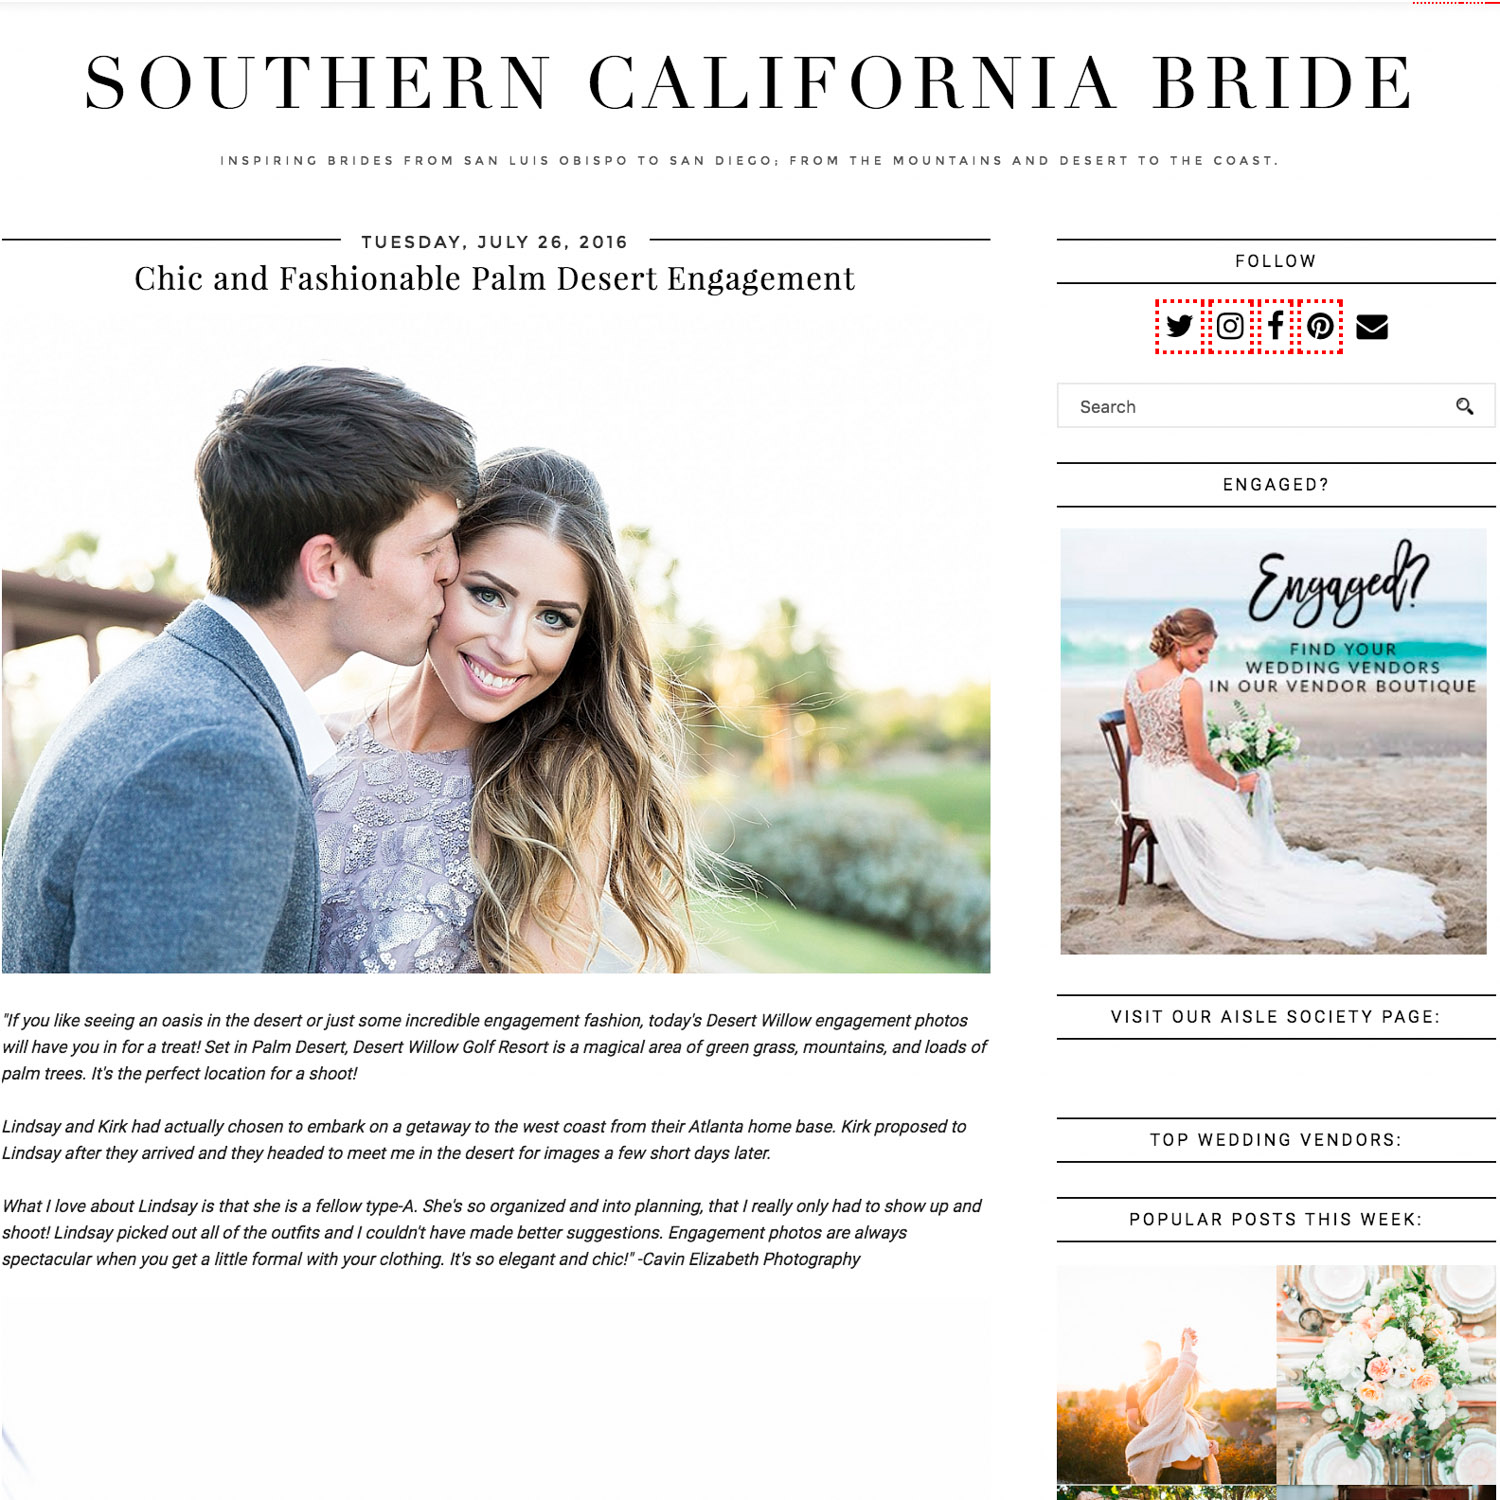 wedding photographer featured on Southern California Bride